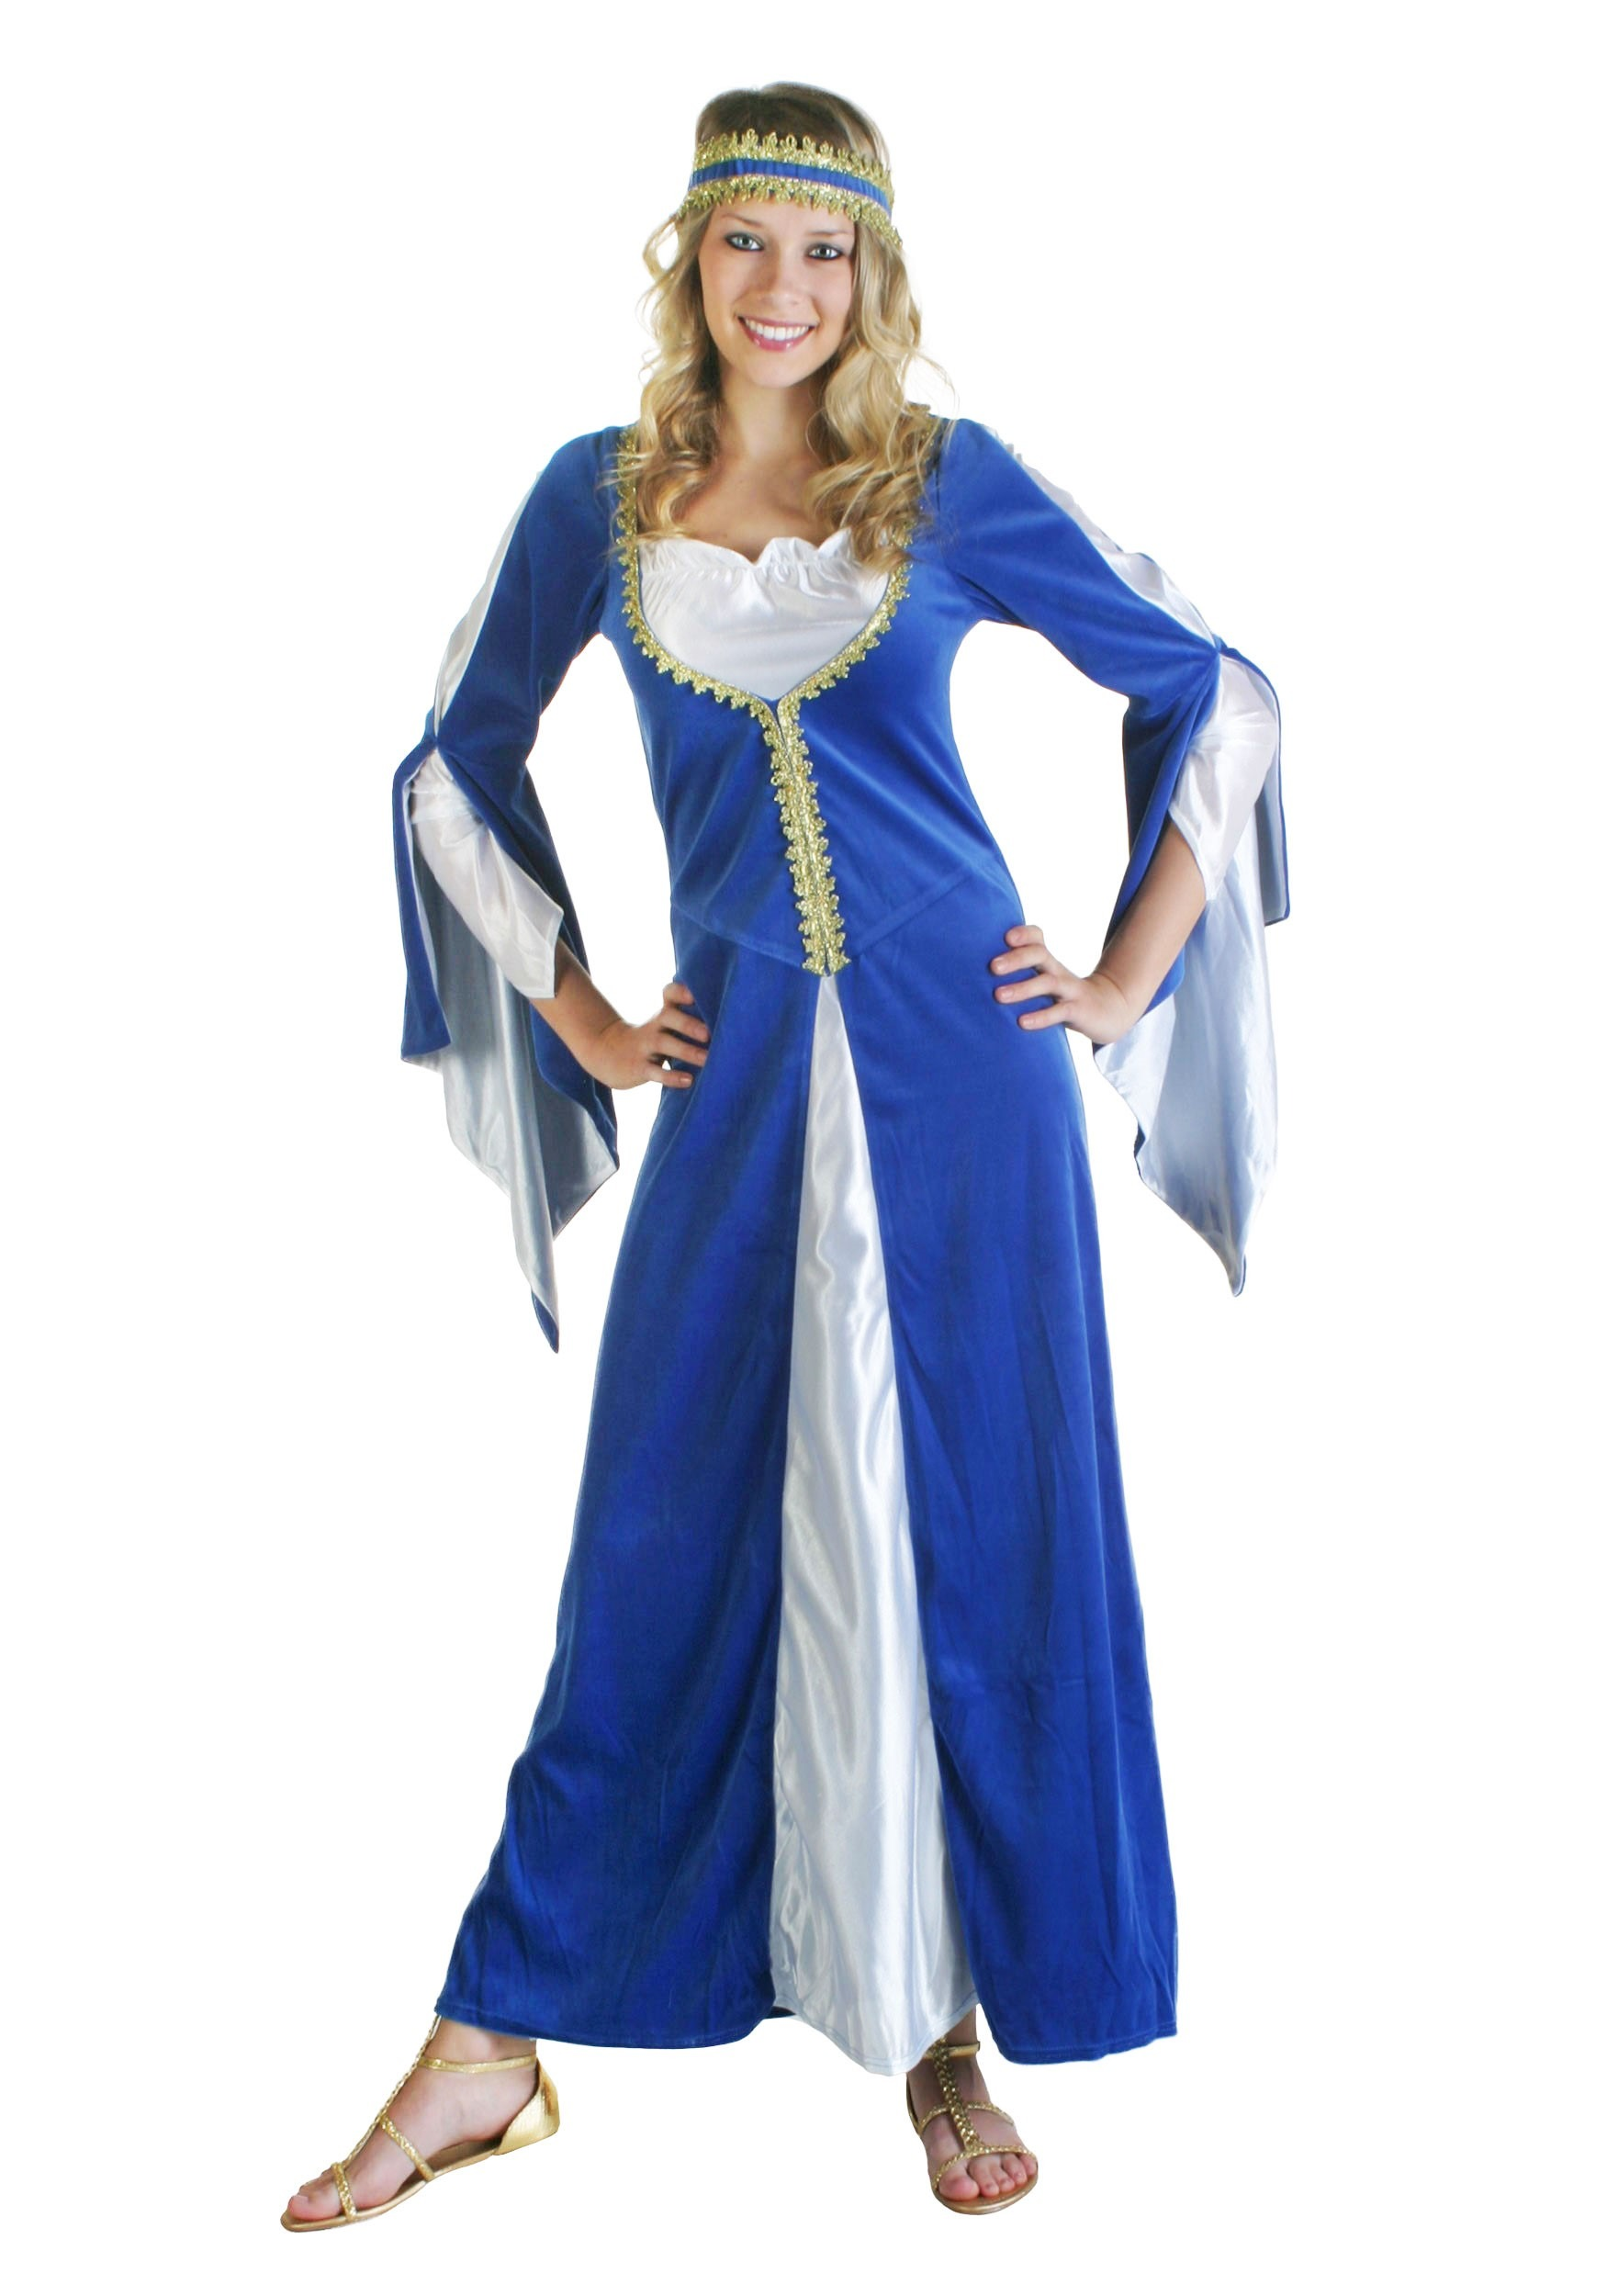 Adult Princess Costume  sc 1 st  Halloween Costume & Adult Princess Renaissance Costume - Renaissance Queen Costumes